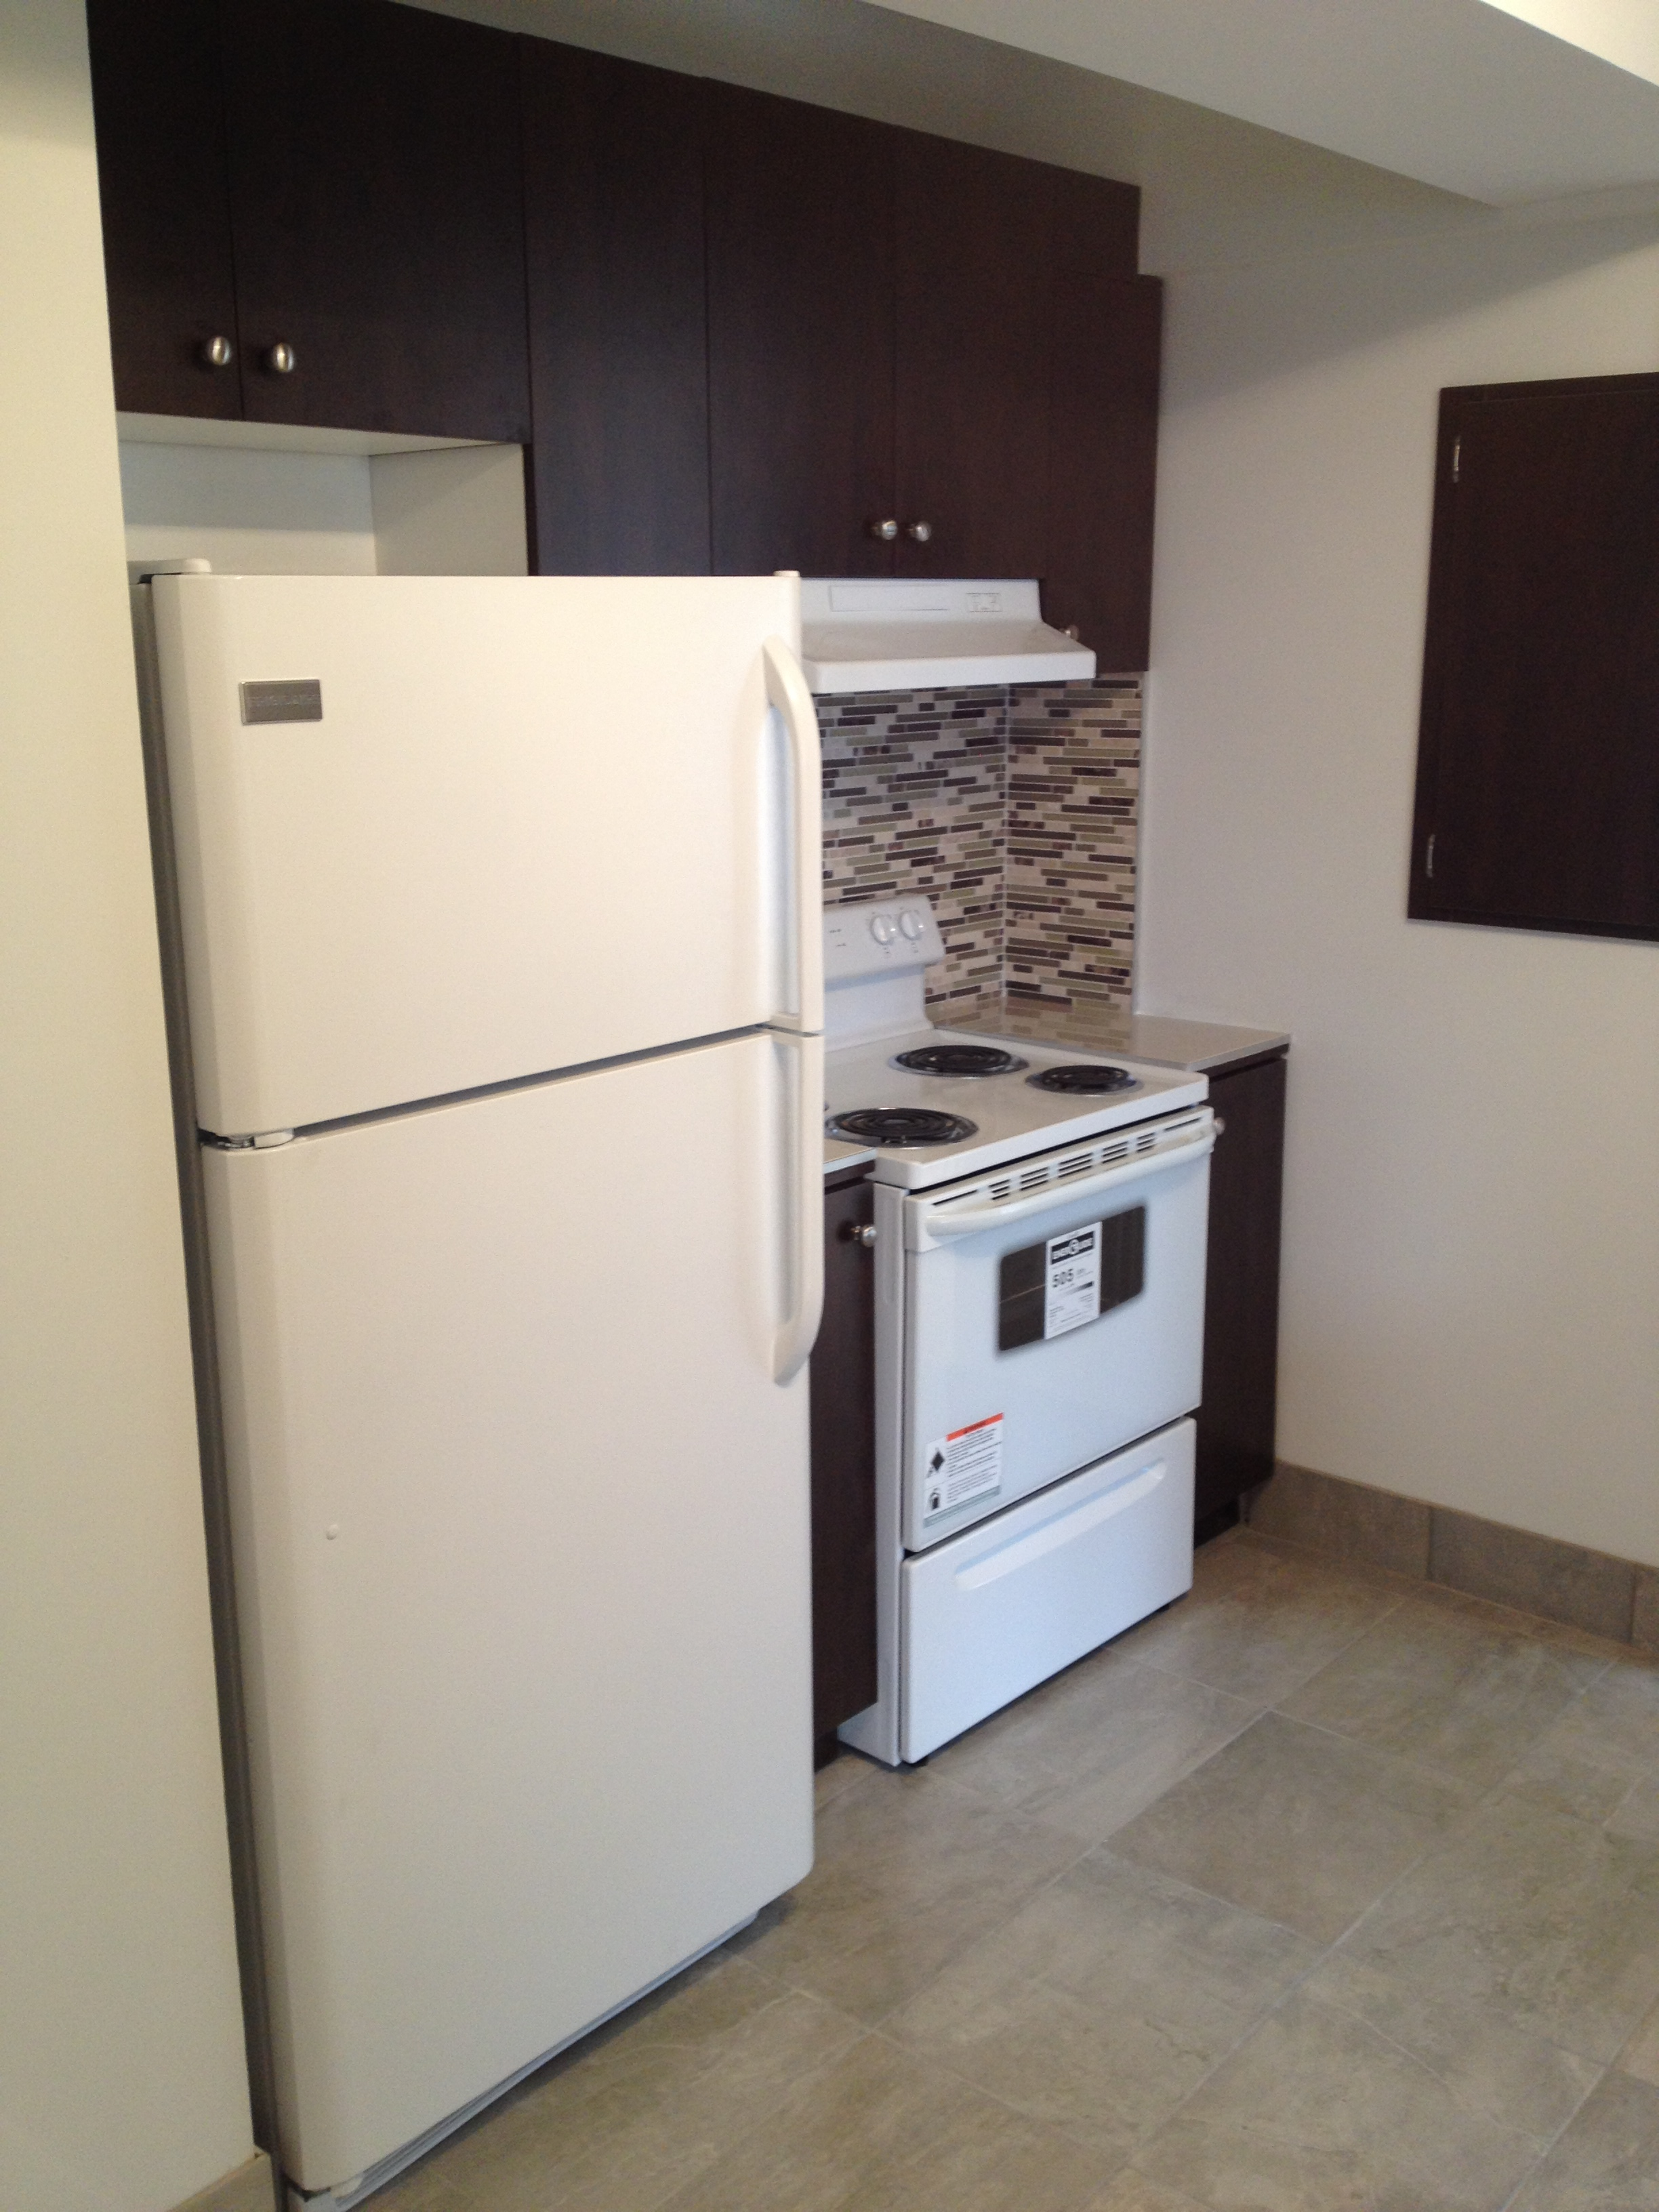 1 bedroom Apartments for rent in Cote-des-Neiges at 4201 Decarie - Photo 04 - RentQuebecApartments – L146808